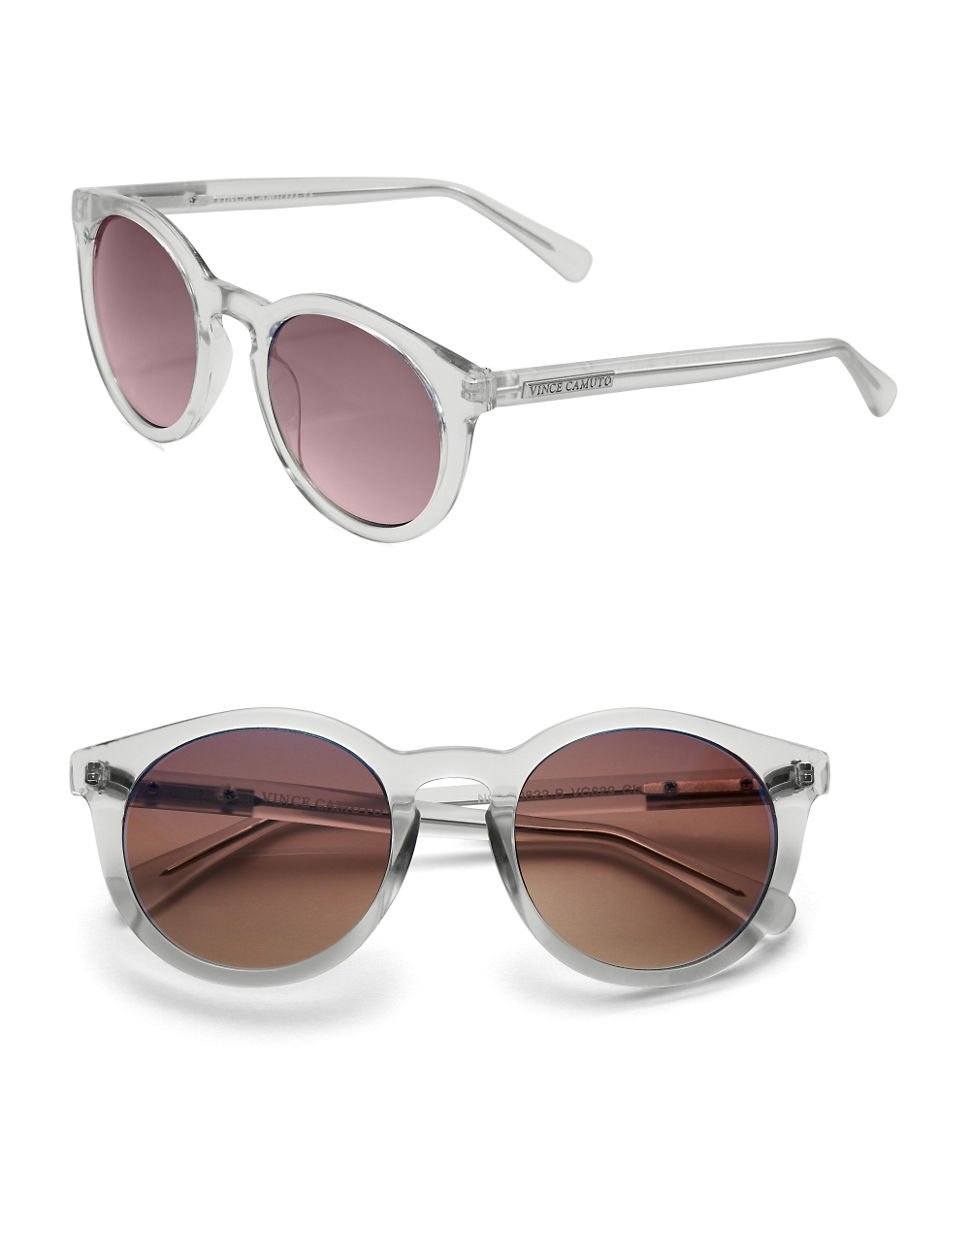 e32a03ff1b Lyst - Vince Camuto 57Mm Round Frame Sunglasses